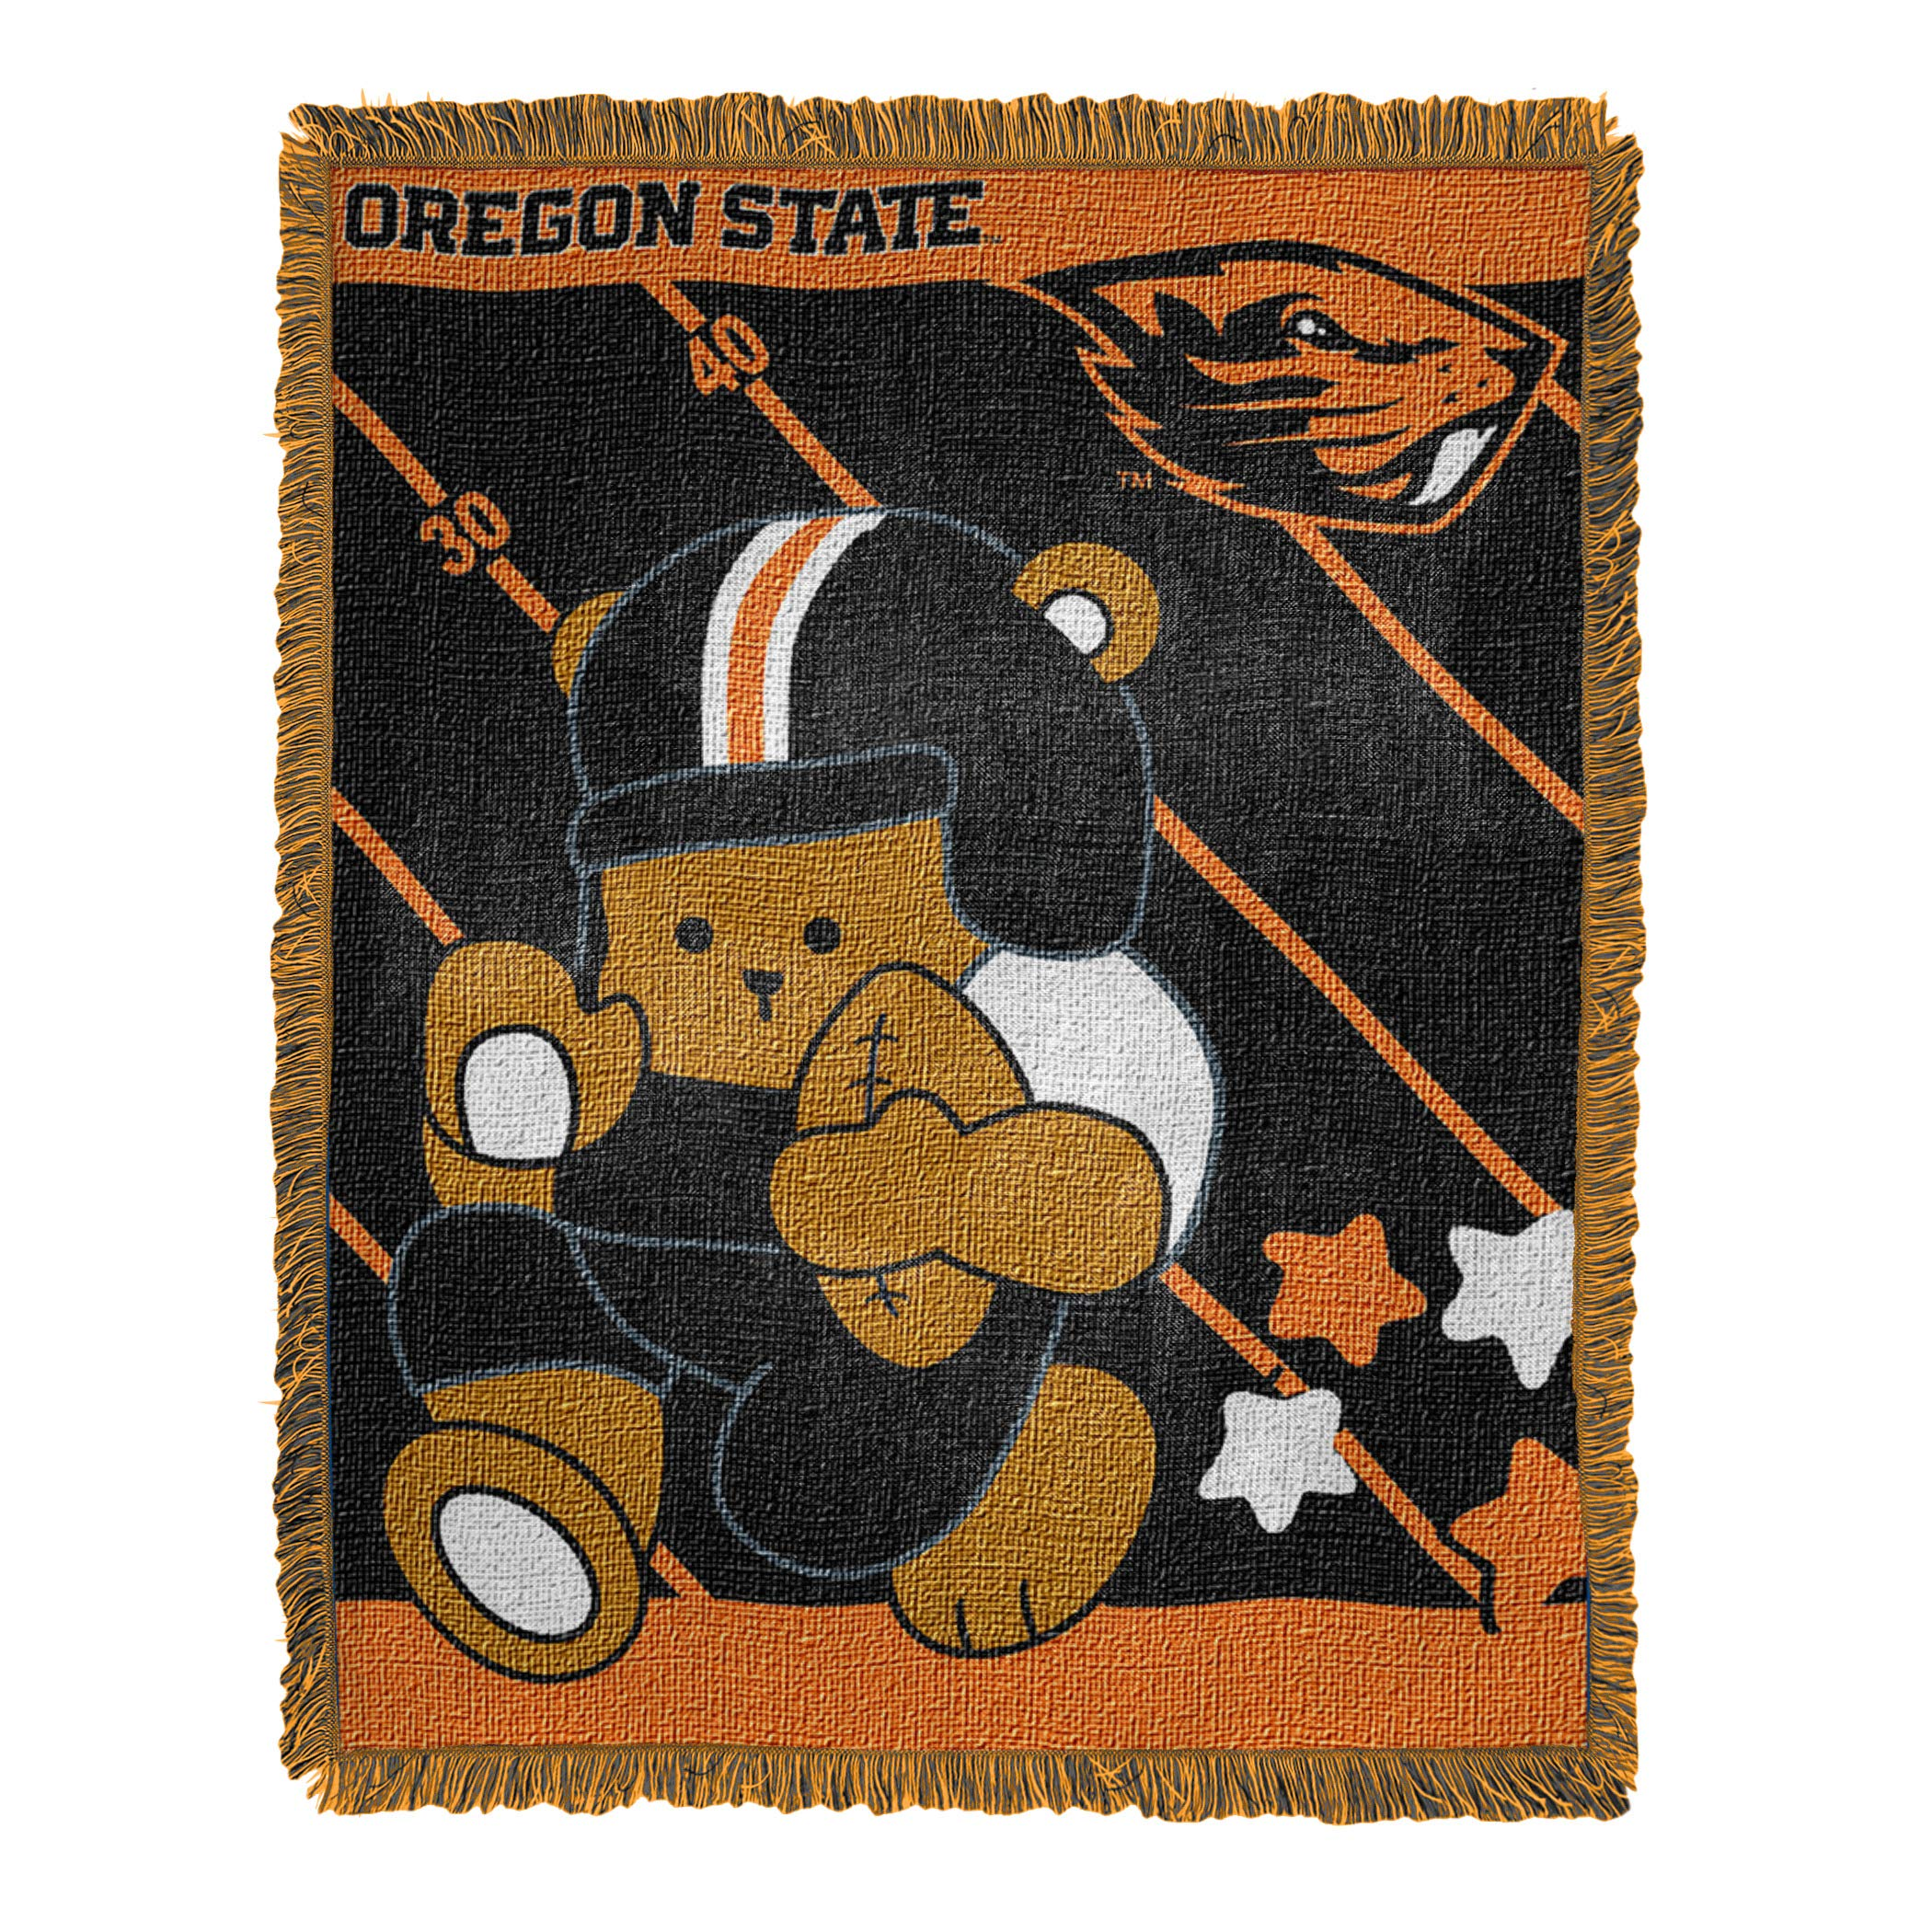 """Officially Licensed NCAA """"Fullback"""" Jacquard Woven Baby Throw Blanket, 36"""" x 46"""", Multi Color"""